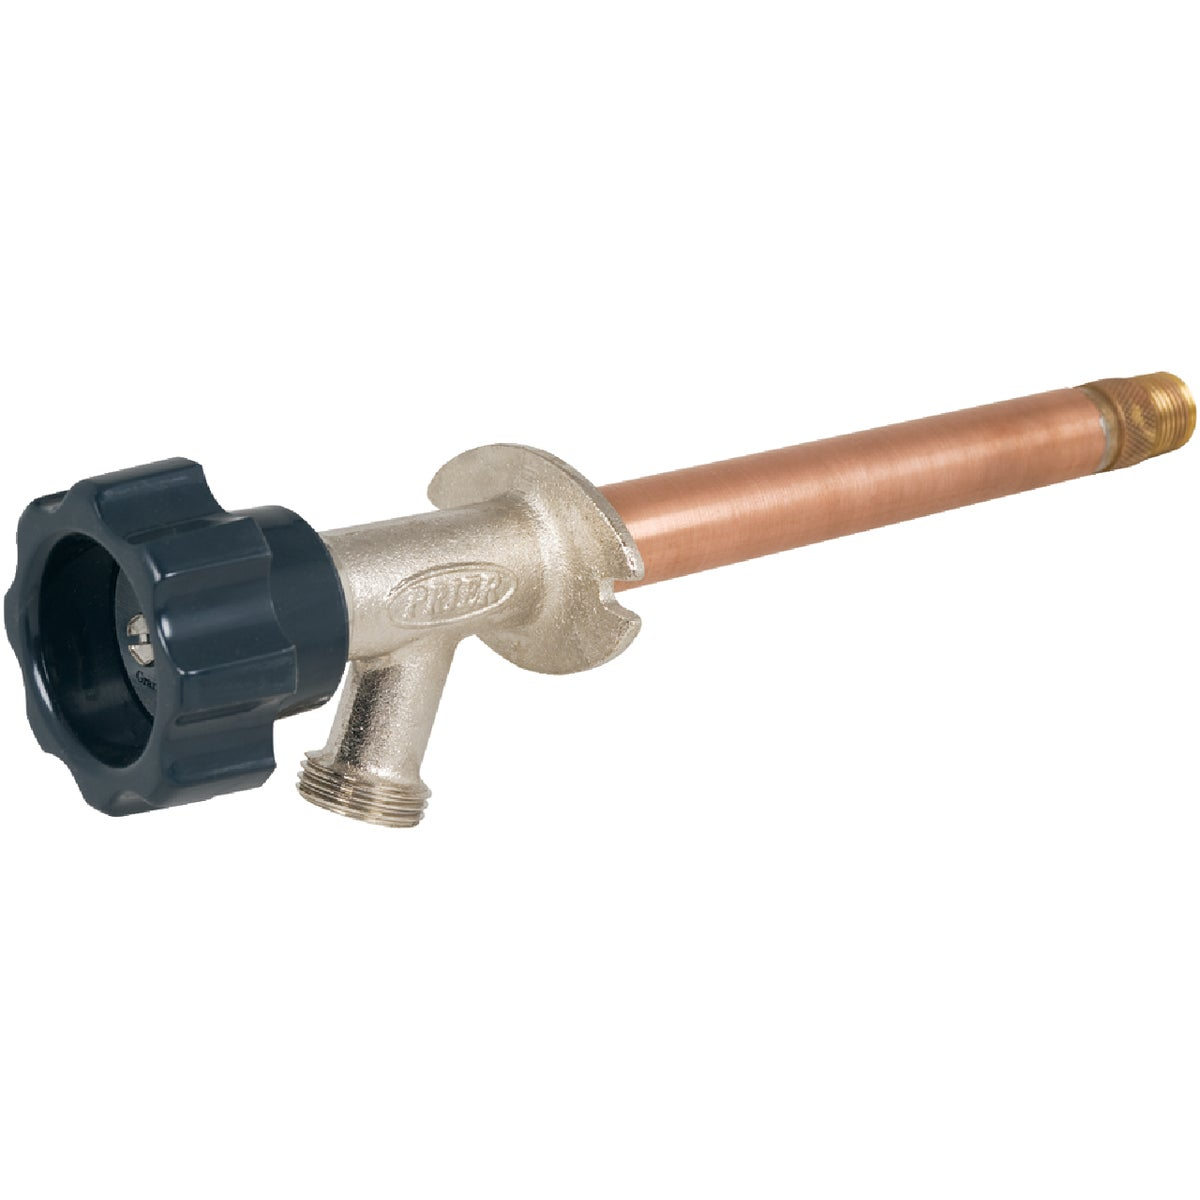 "4"" WALL HYDRANT - 378-04 by Prier Products"